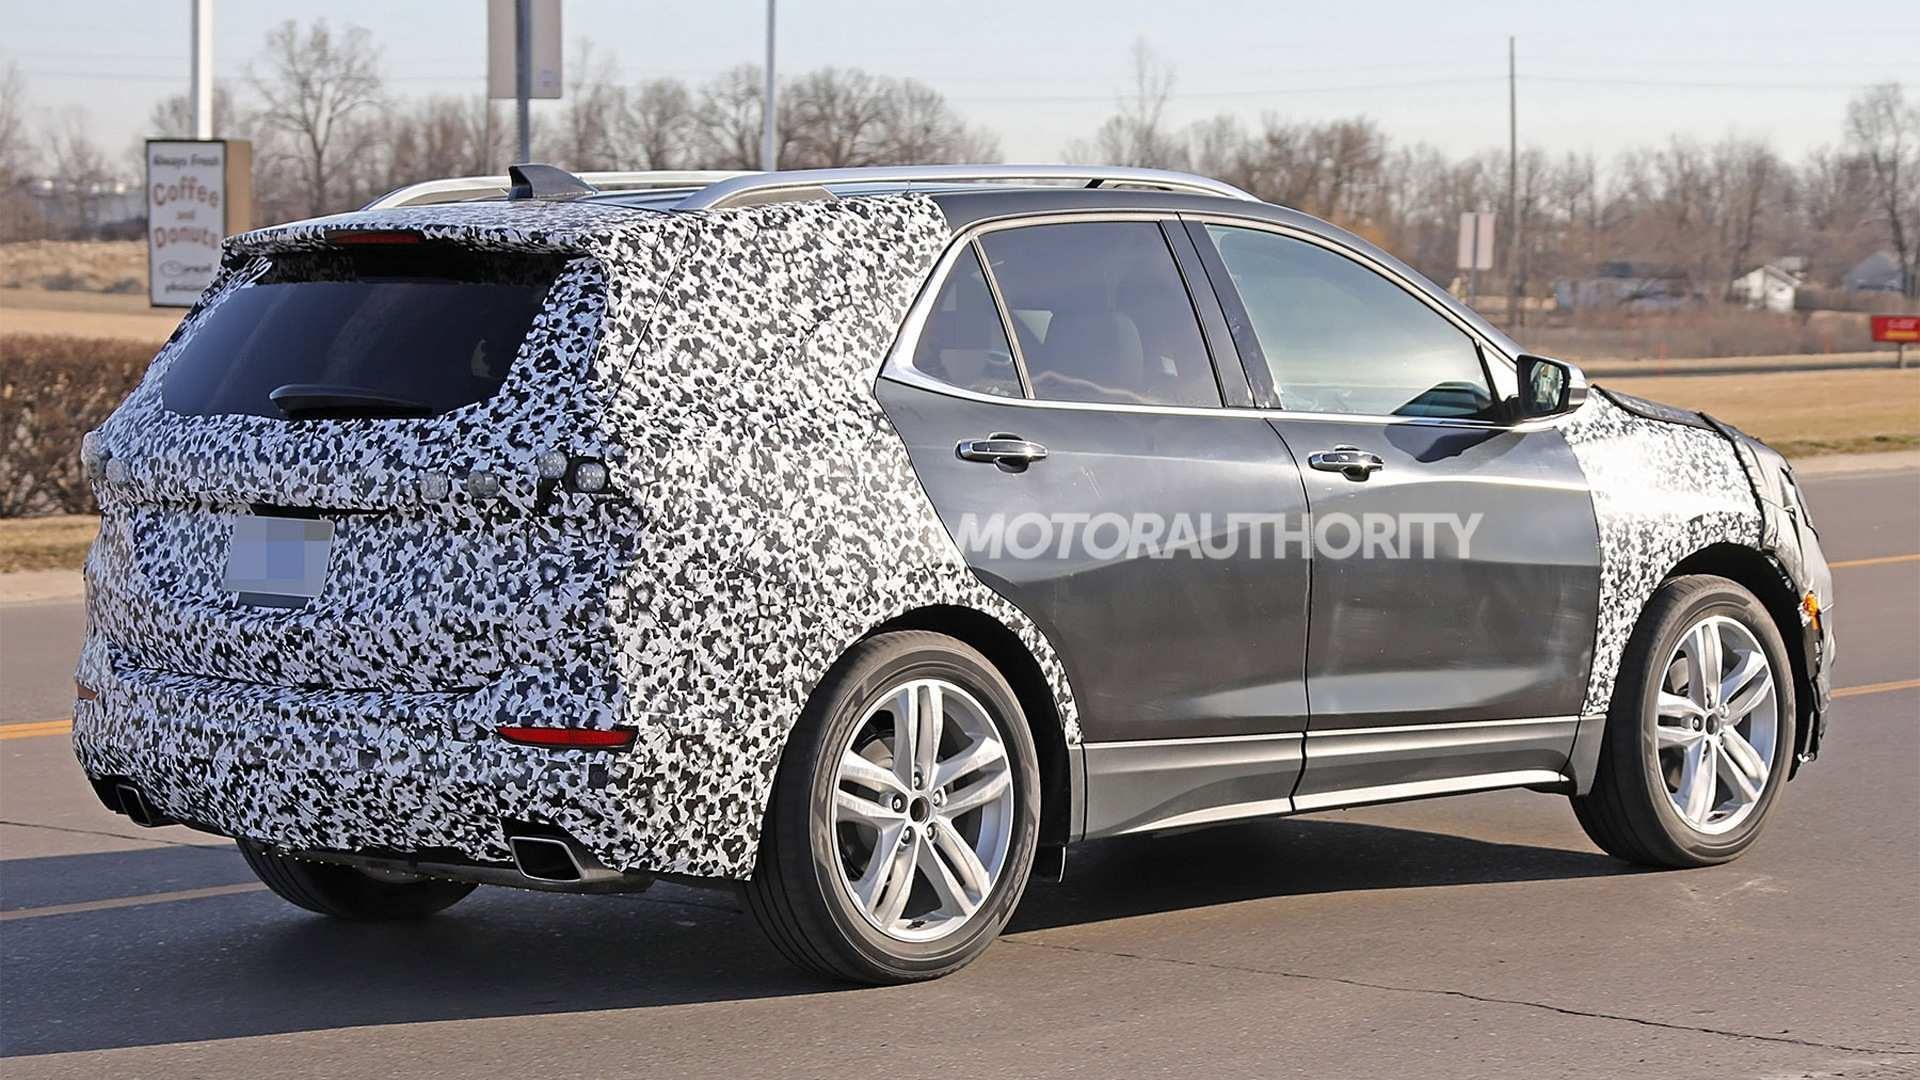 42 New 2020 All Chevy Equinox Model